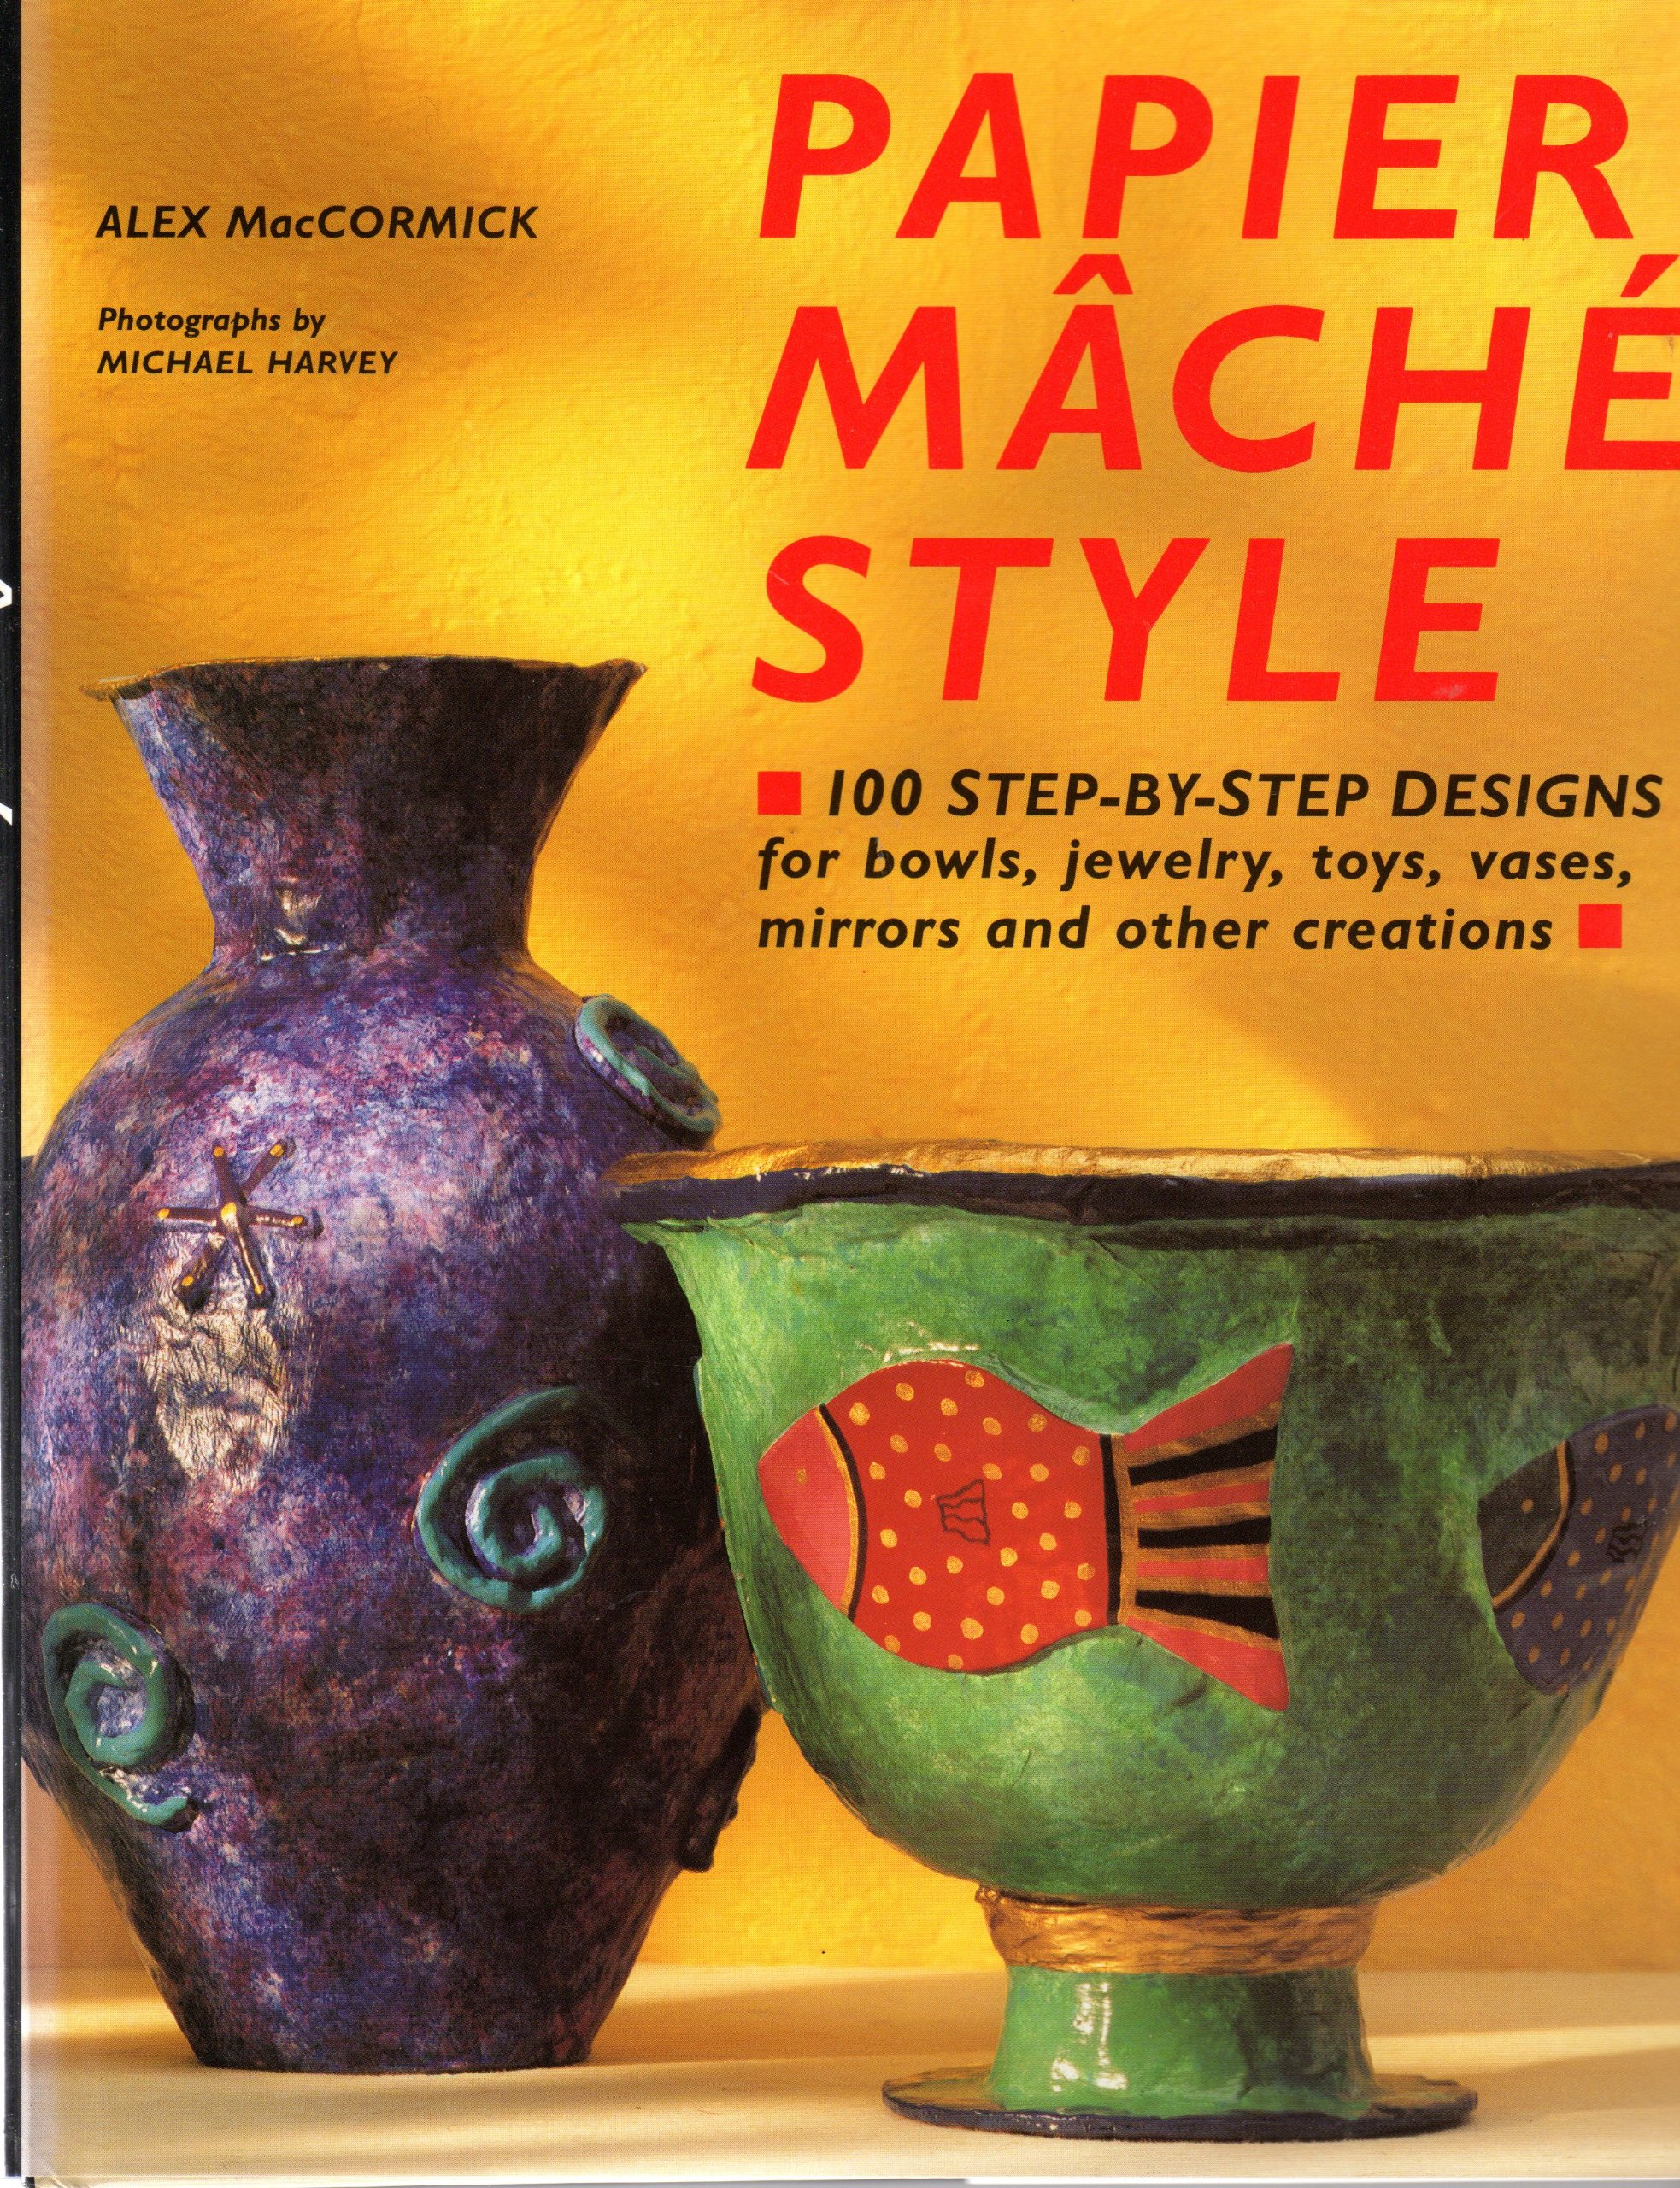 Papier mache style one hundred step by step designs for bowls papier mache style one hundred step by step designs for bowls jewelry toys vases mirrors and other creations alex maccormick 9781854799128 reviewsmspy